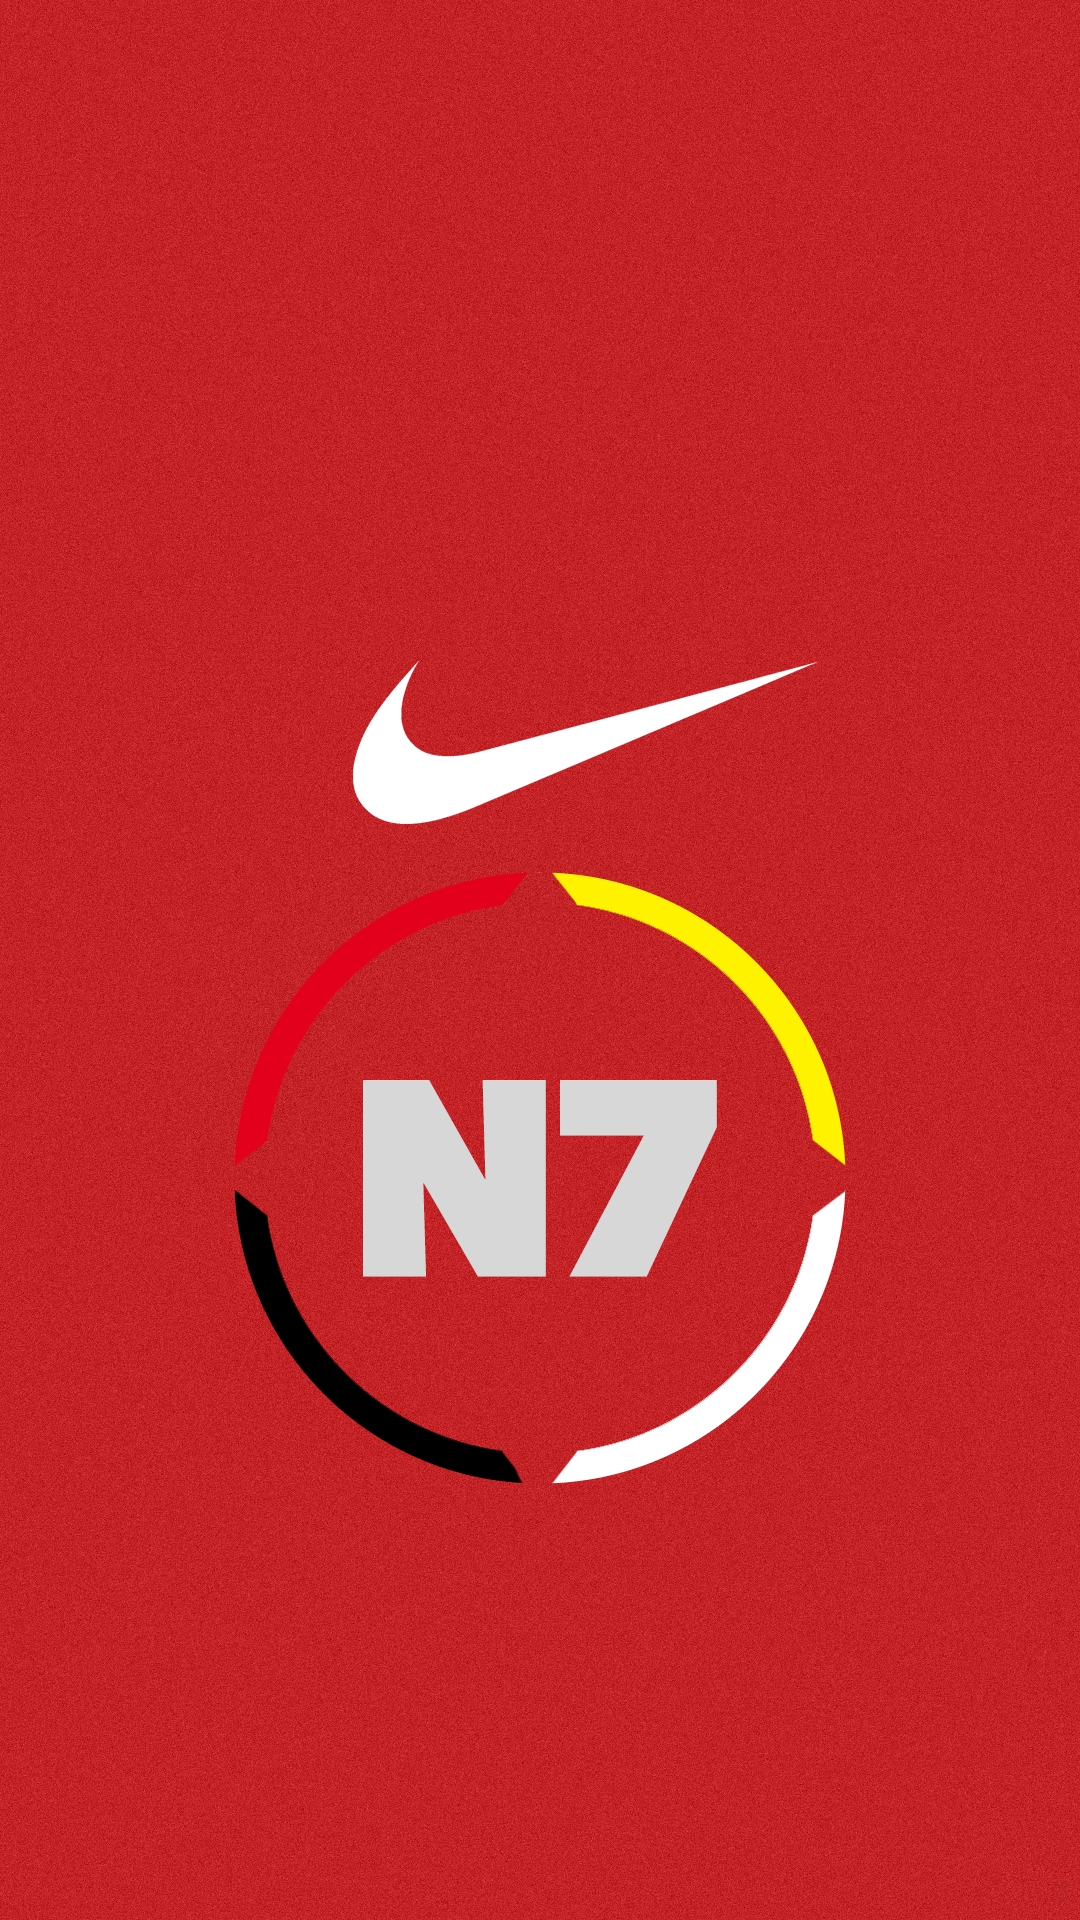 N7 Red Nike Image For Iphone